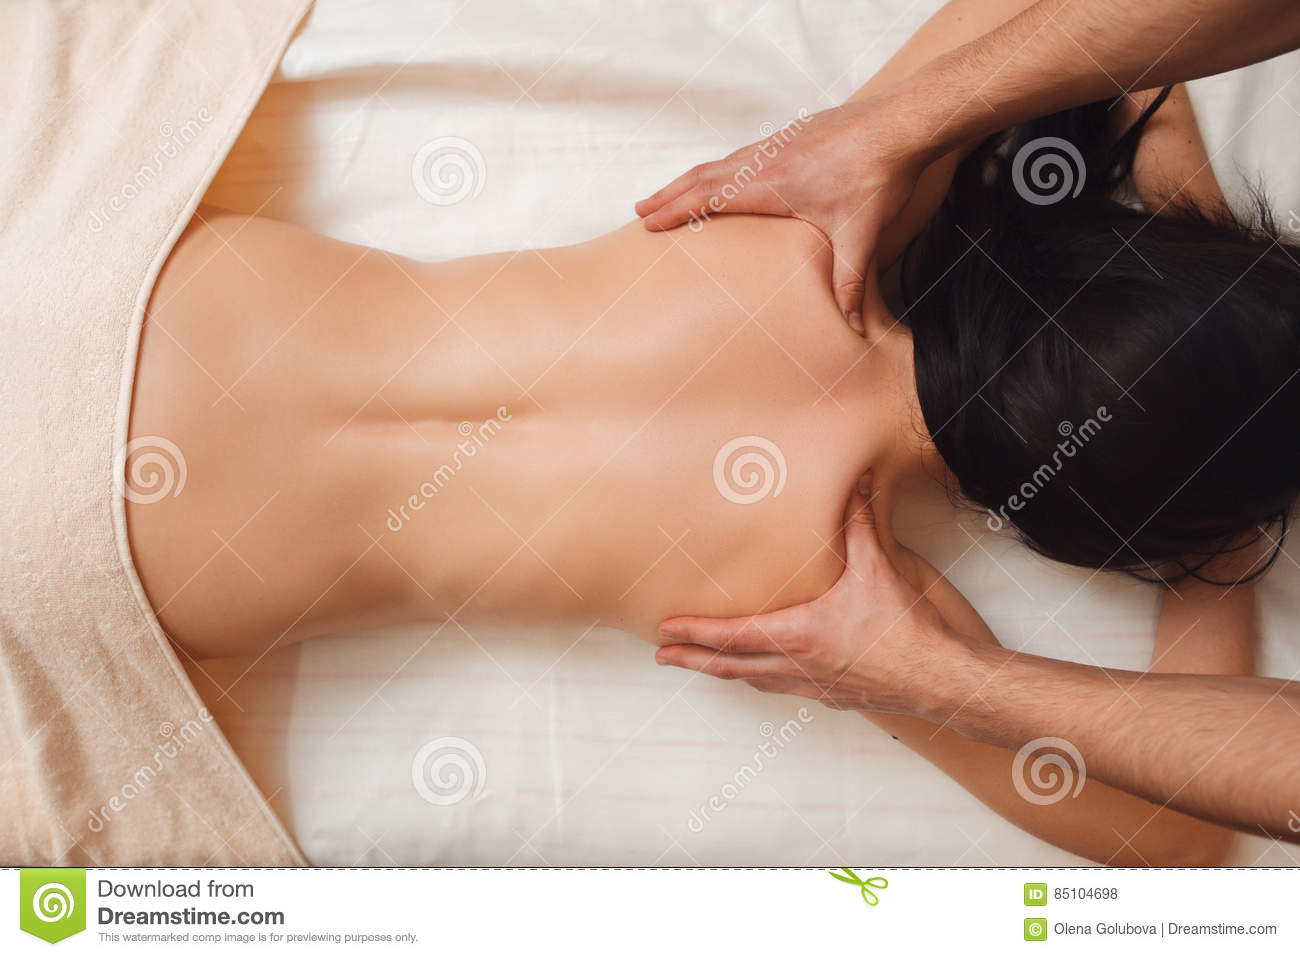 Nacked women body massage